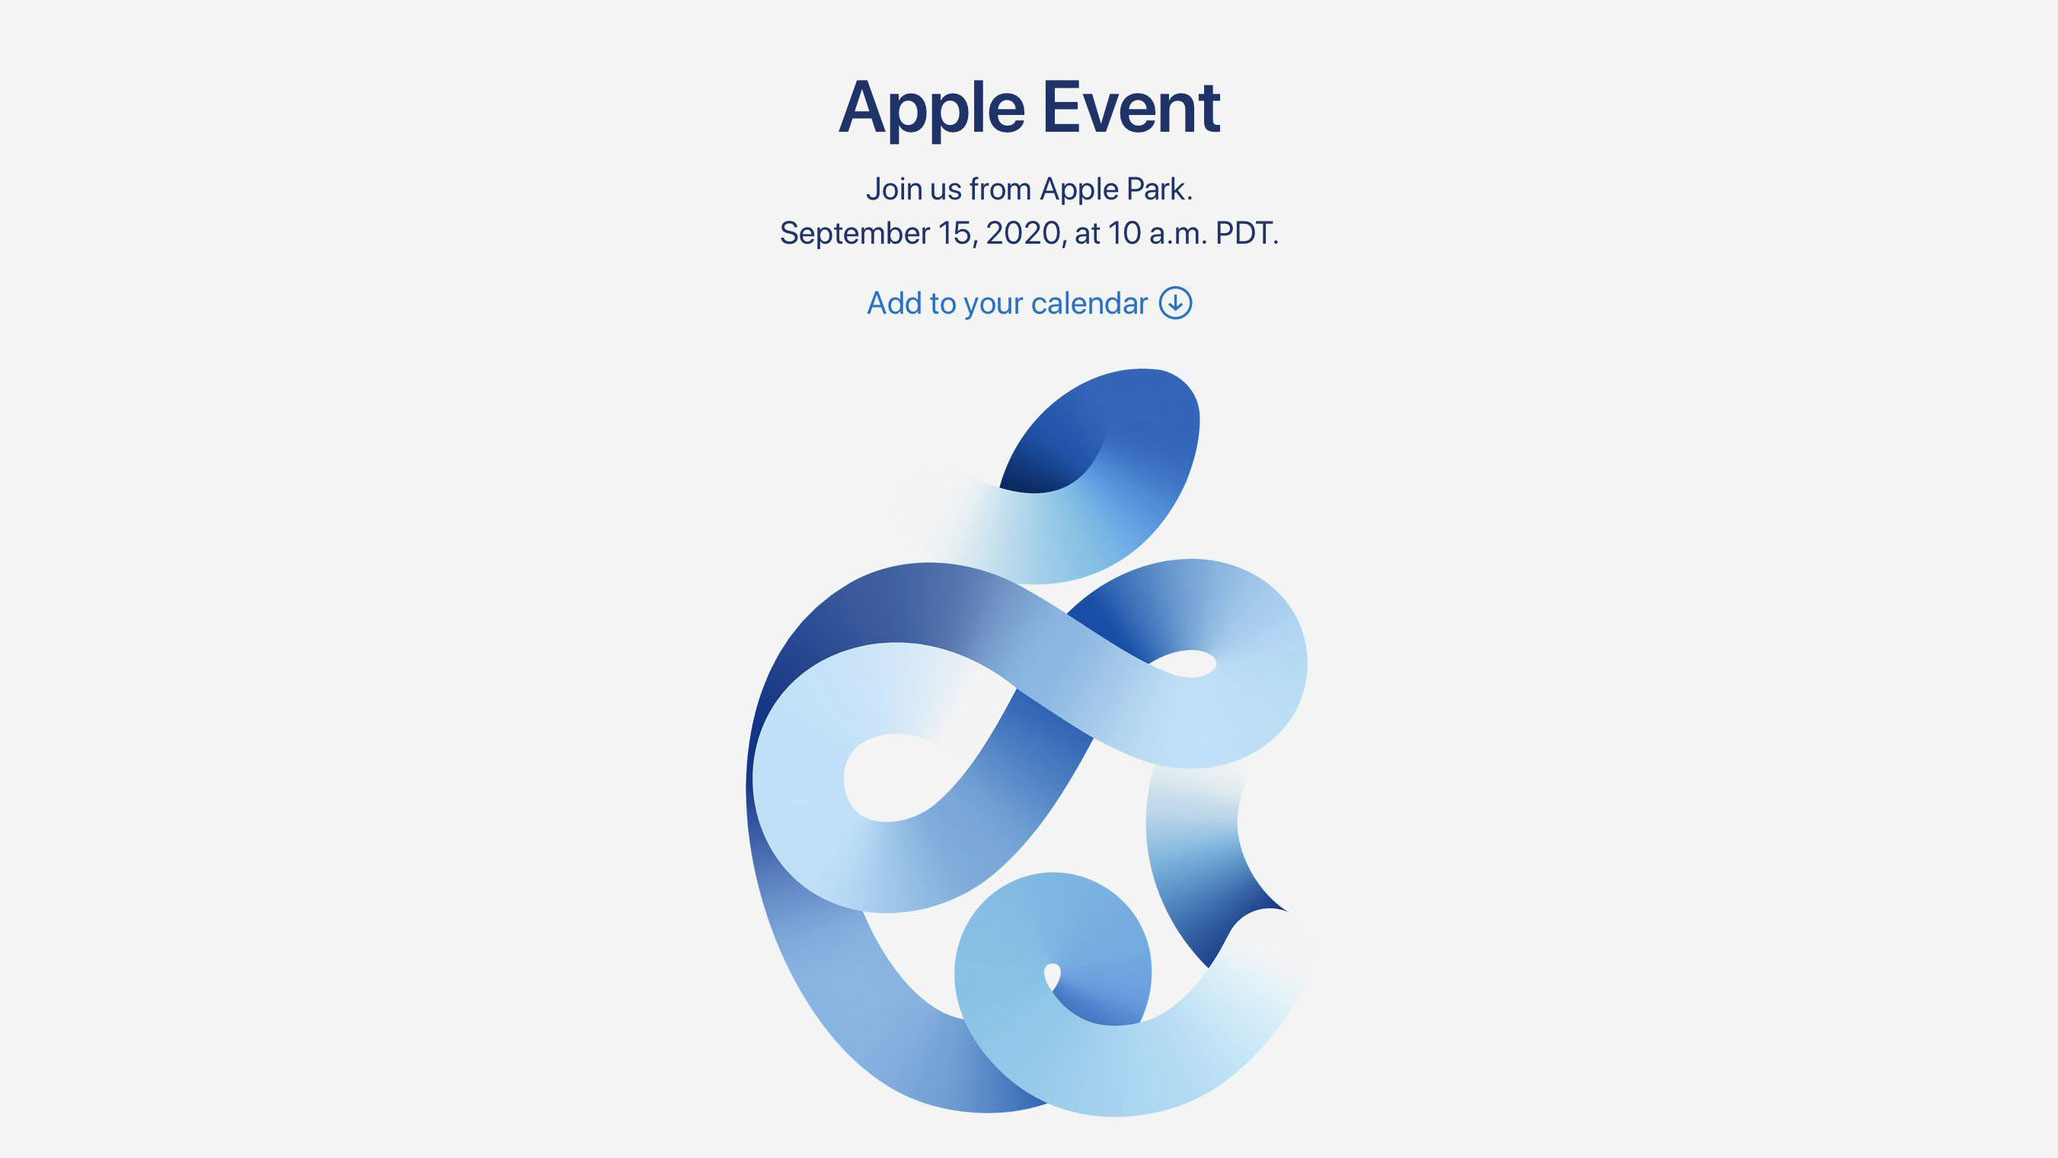 The next Apple event is taking place on September 15.